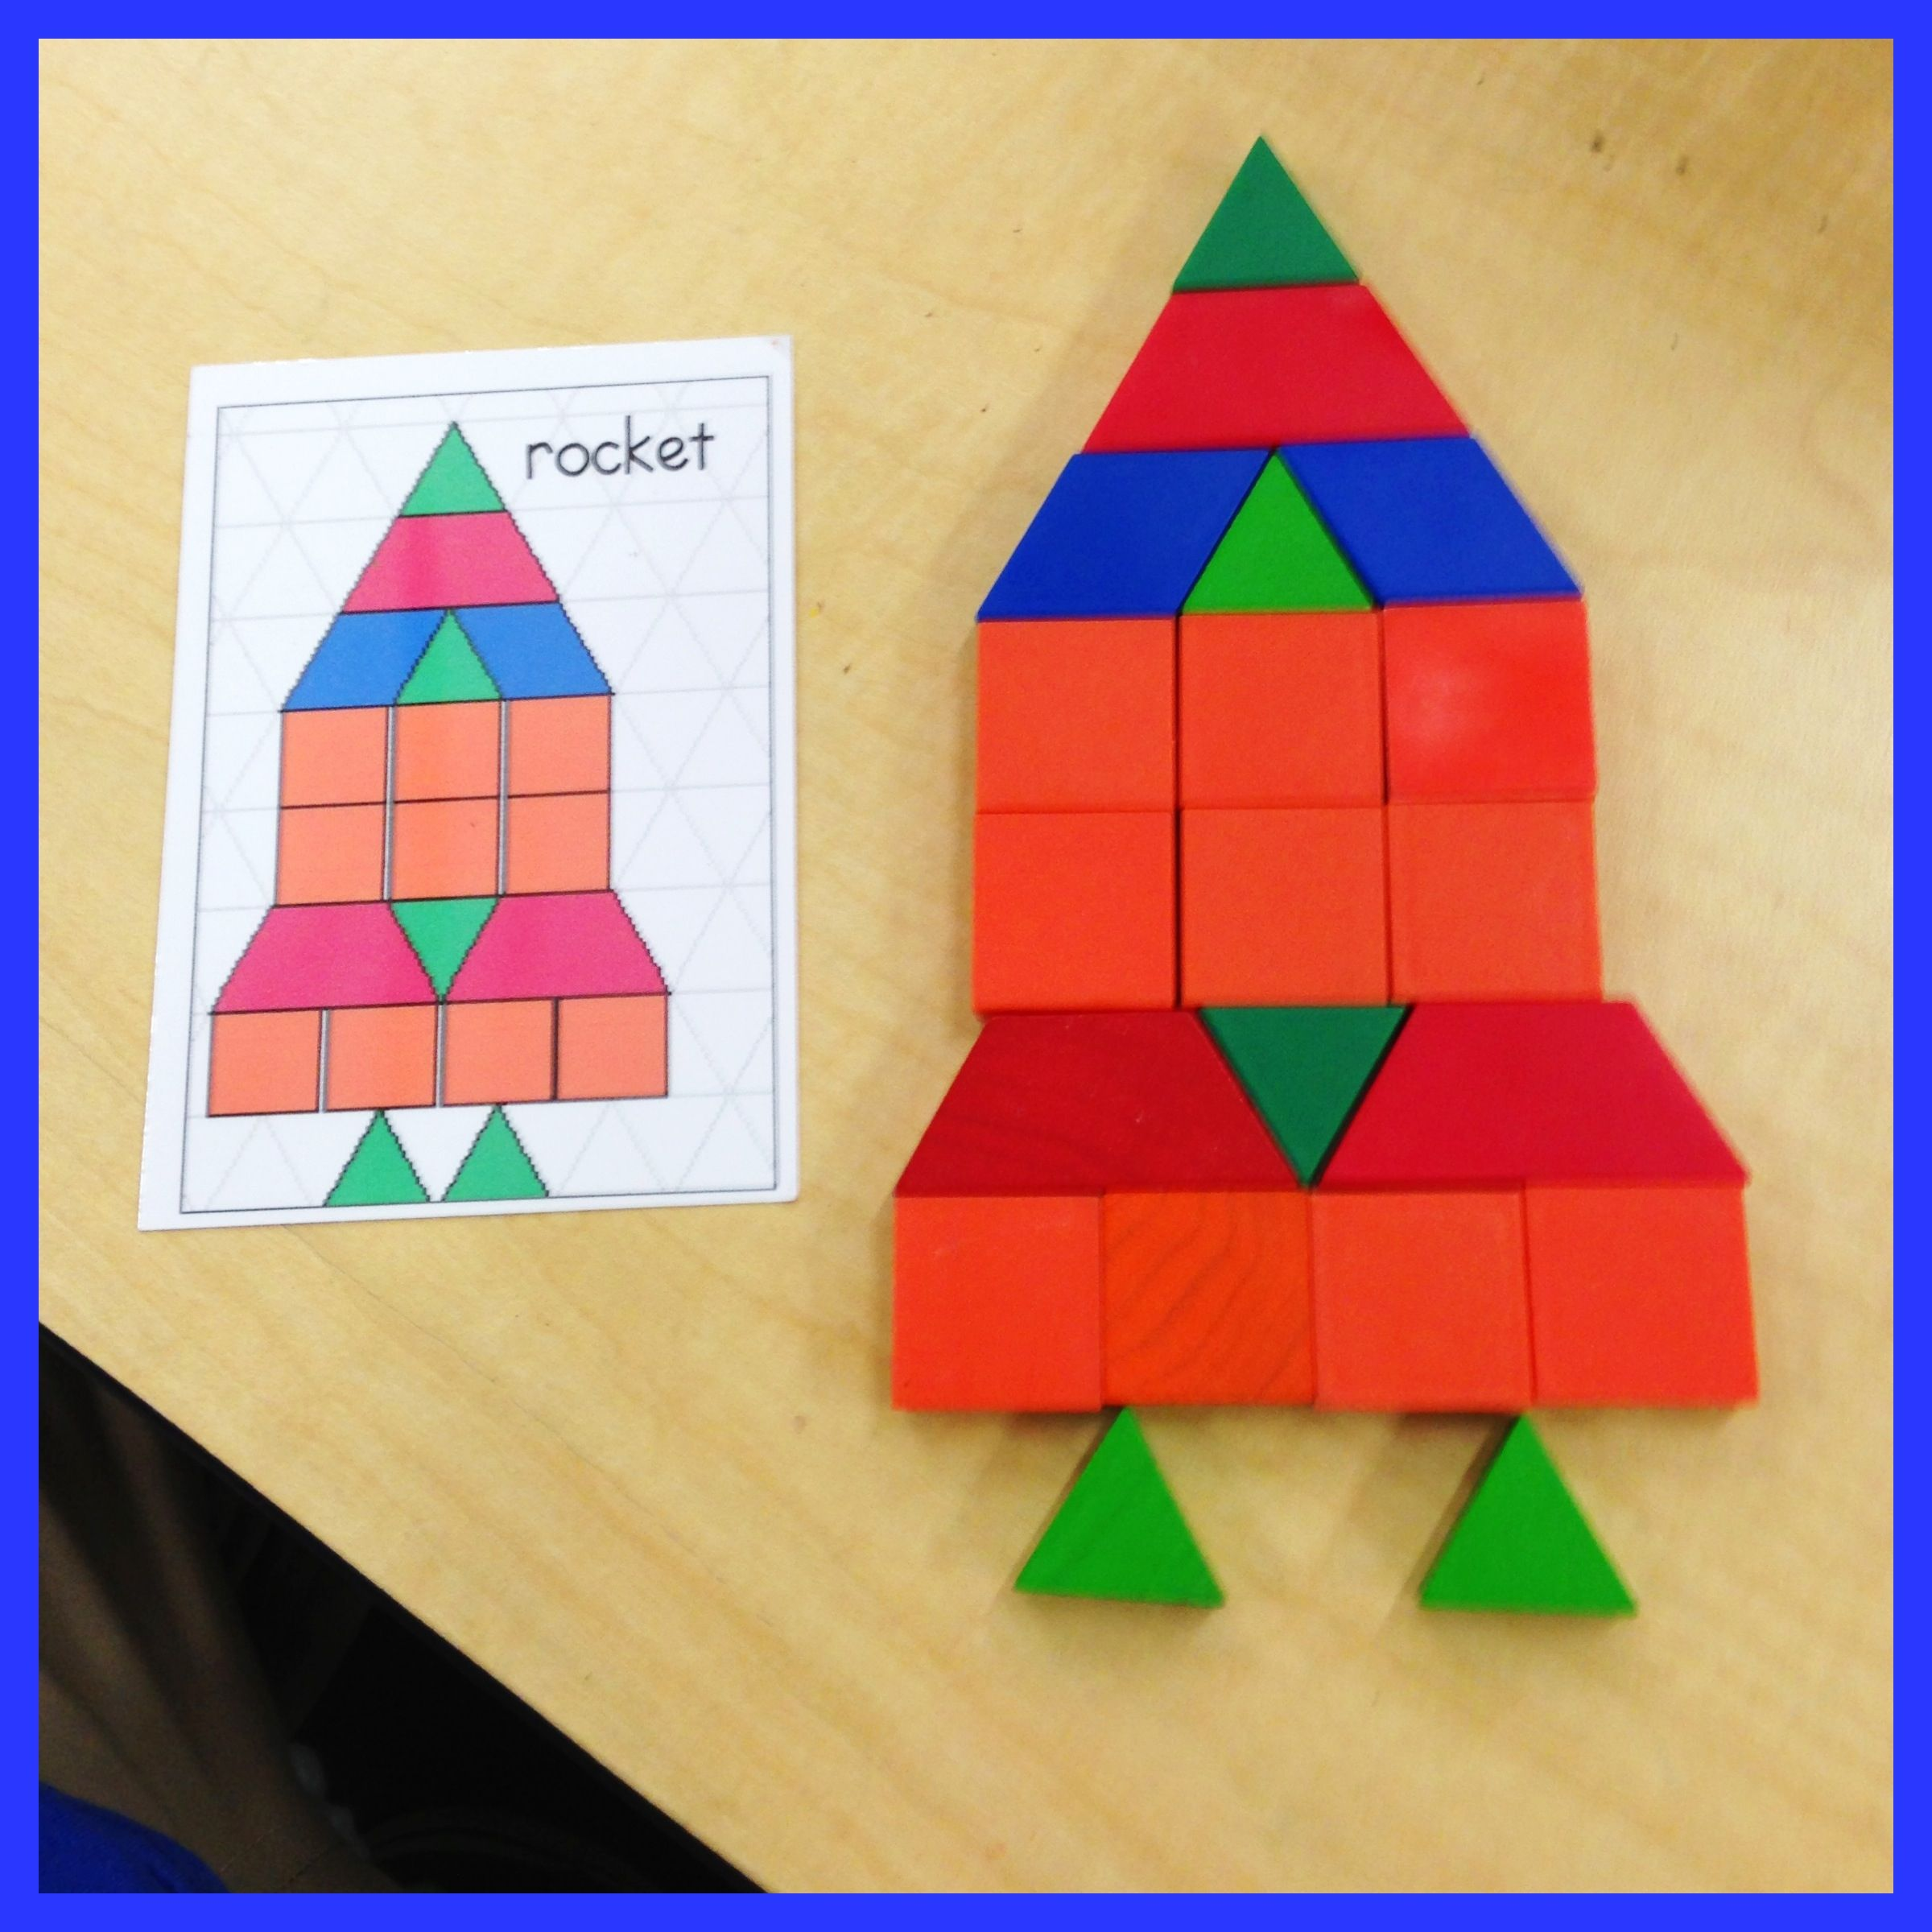 Construct Using Basic Shapes Amp Spatial Reasoning To Model